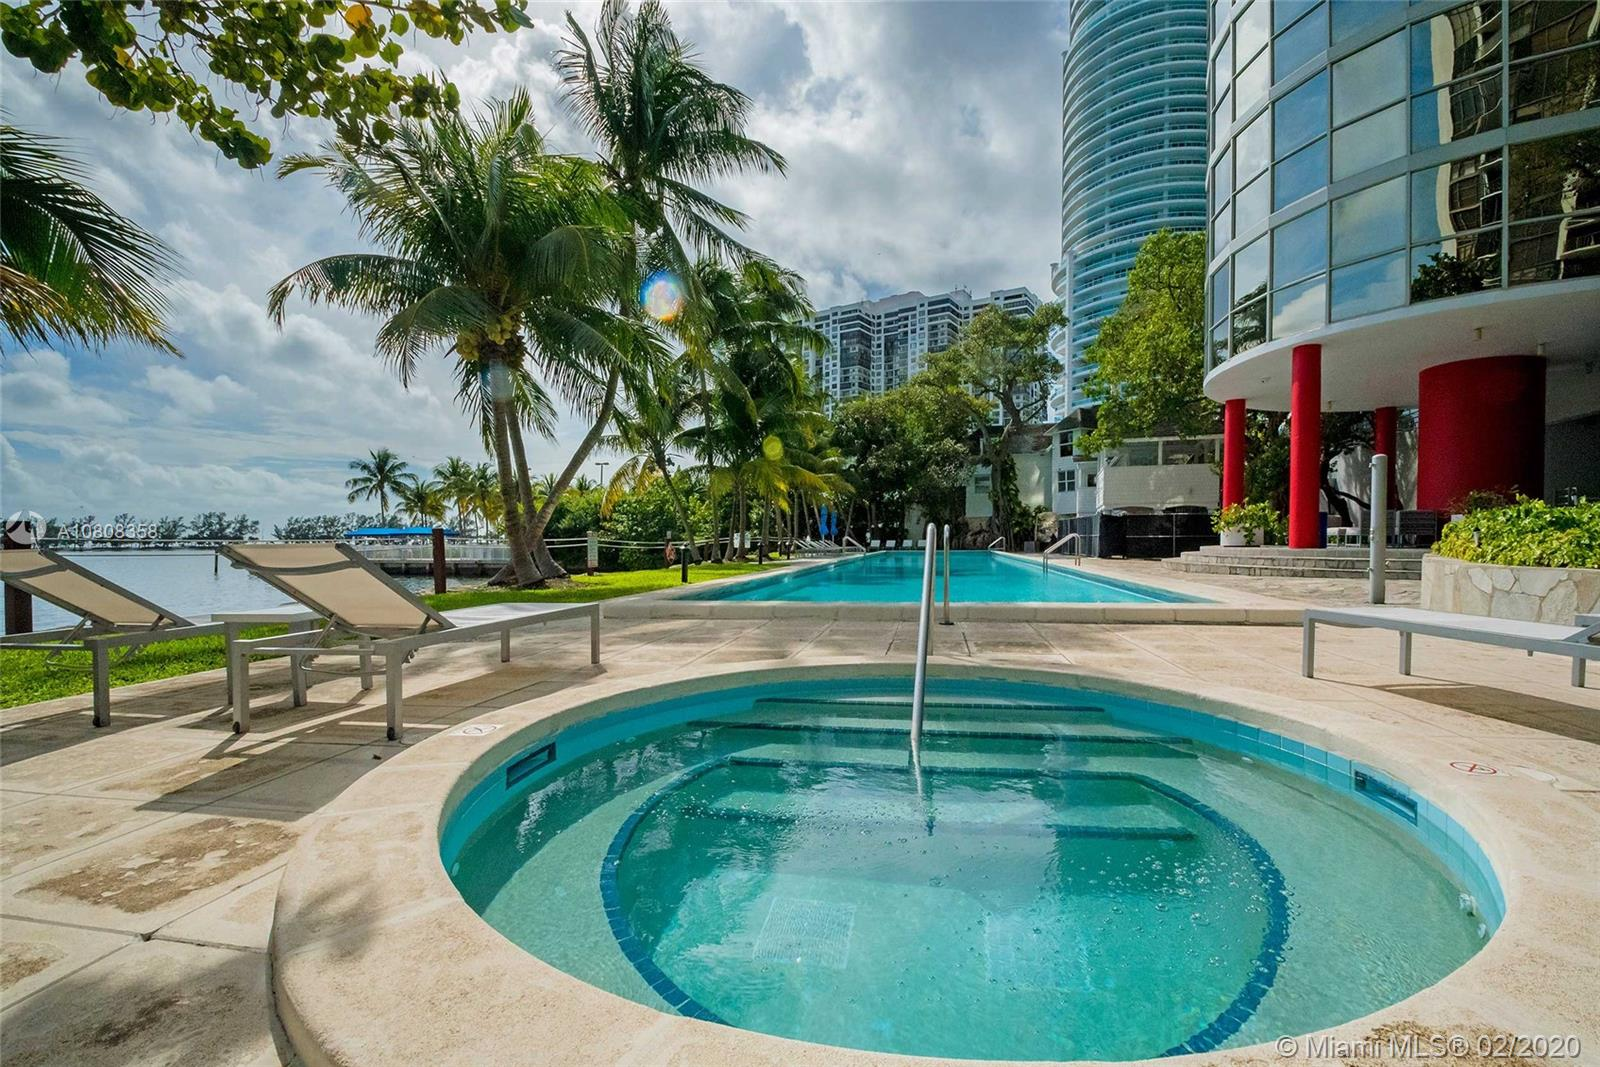 Atlantis on Brickell image #34